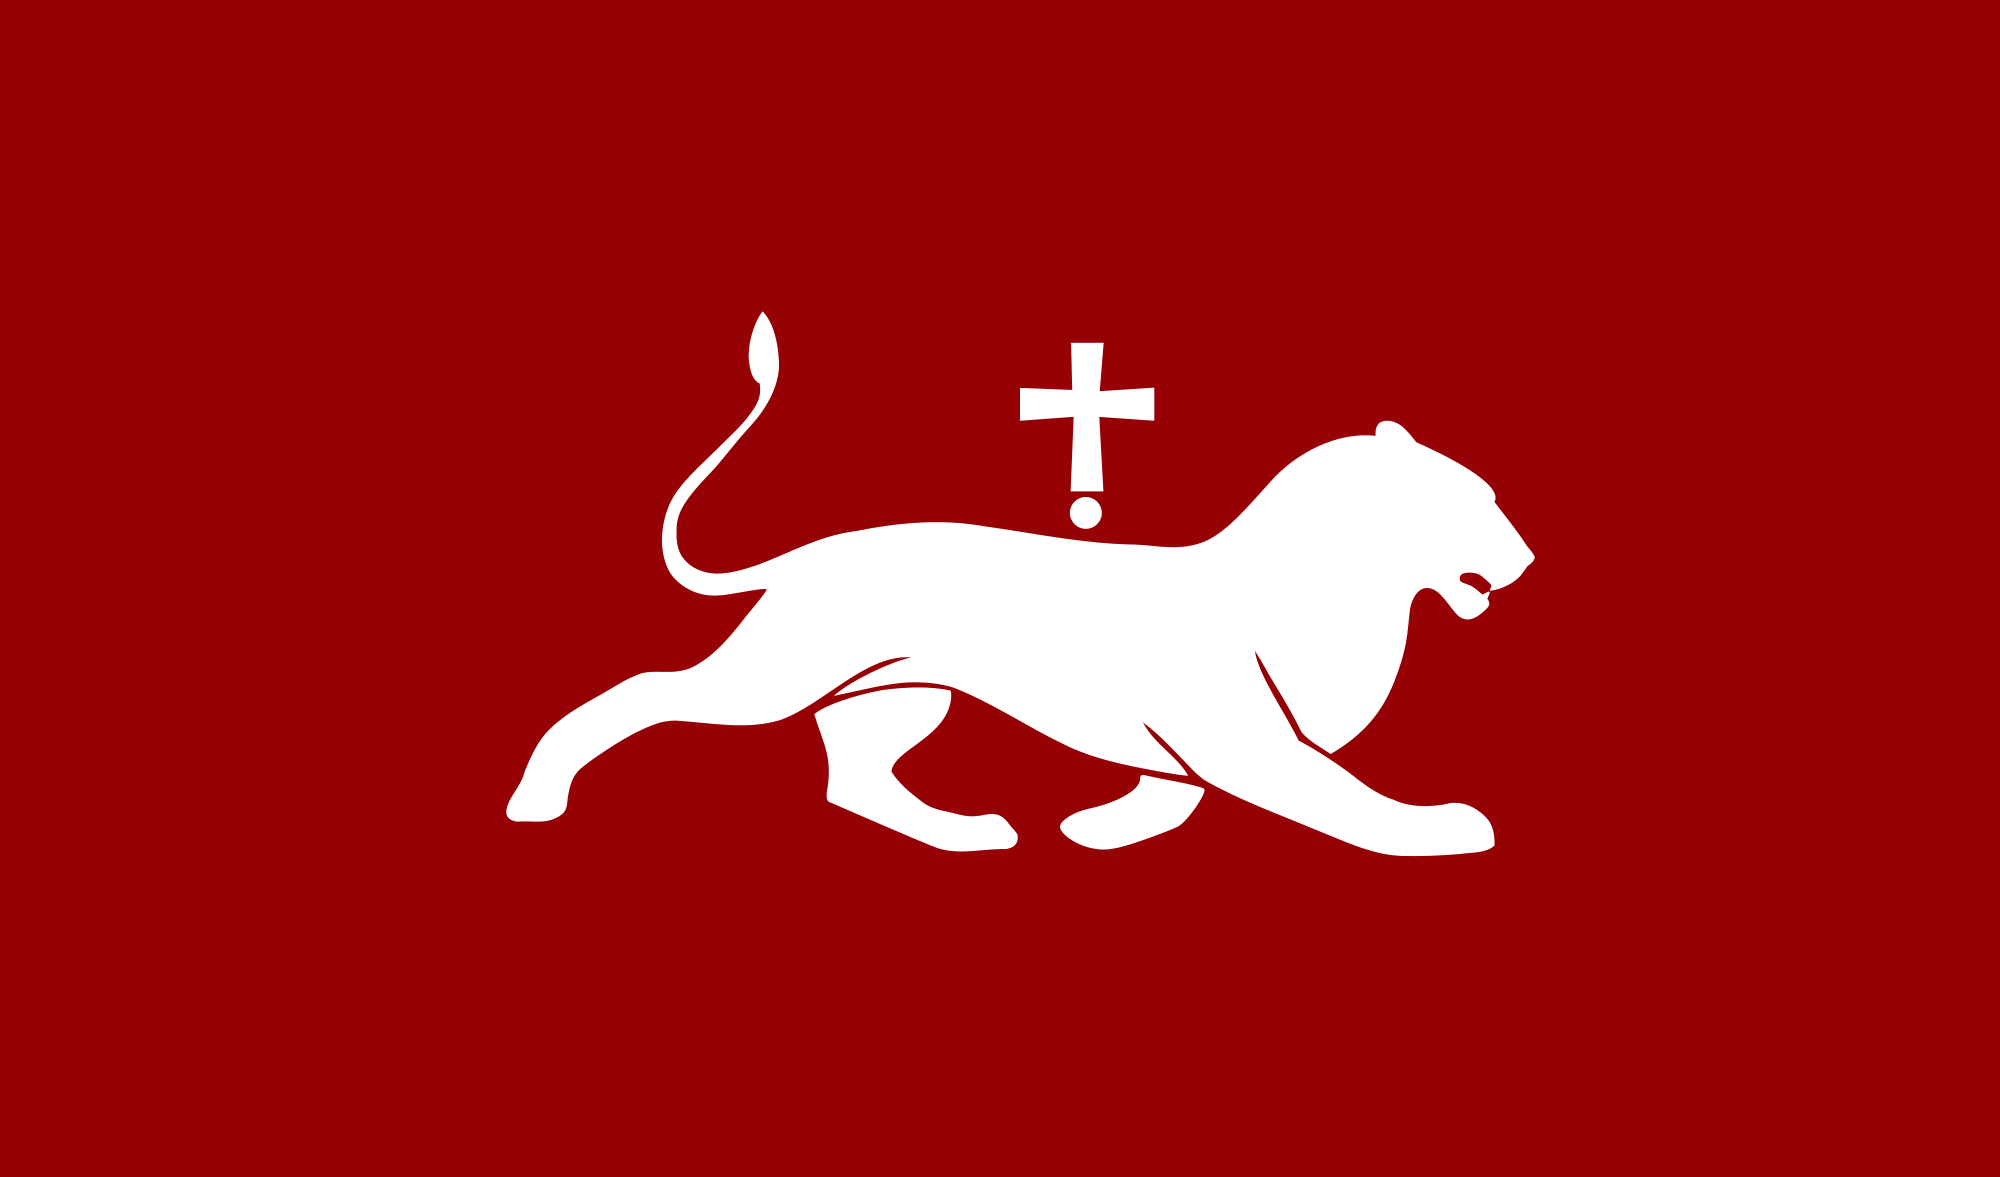 A depiction of the standard of the House of Bagratouni